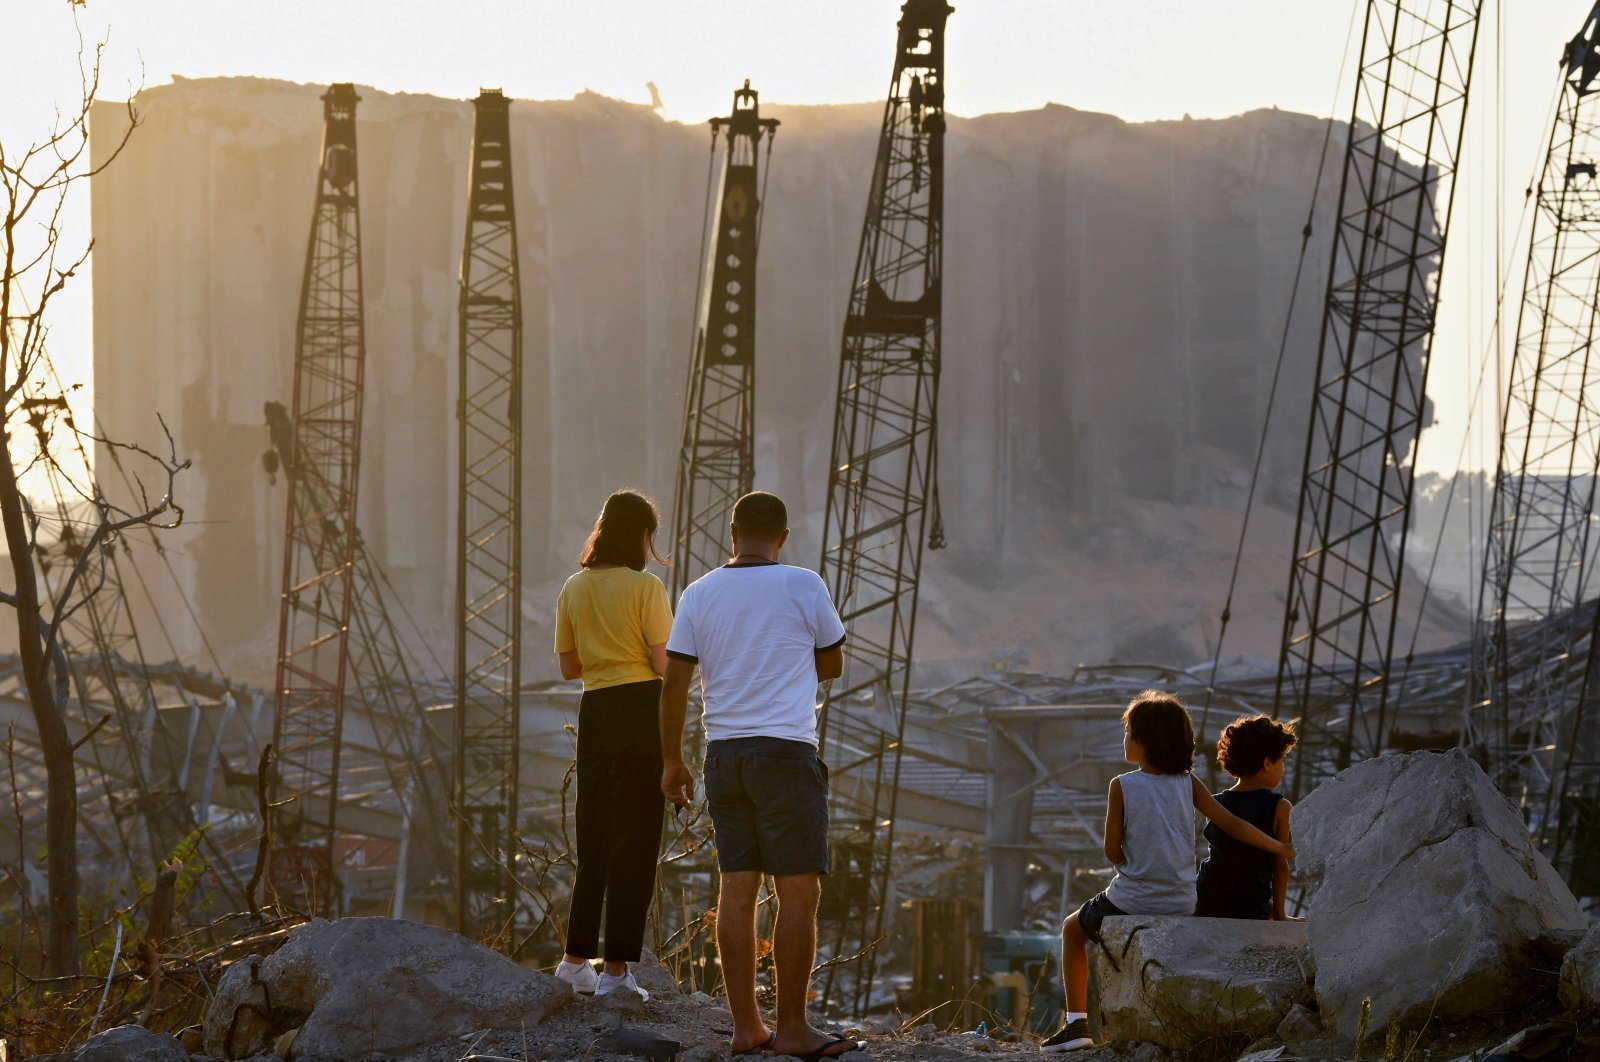 A couple and two children contemplate the damage in front of the grain silo at the port of Beirut, Aug.13, 2020. (AFP Photo)